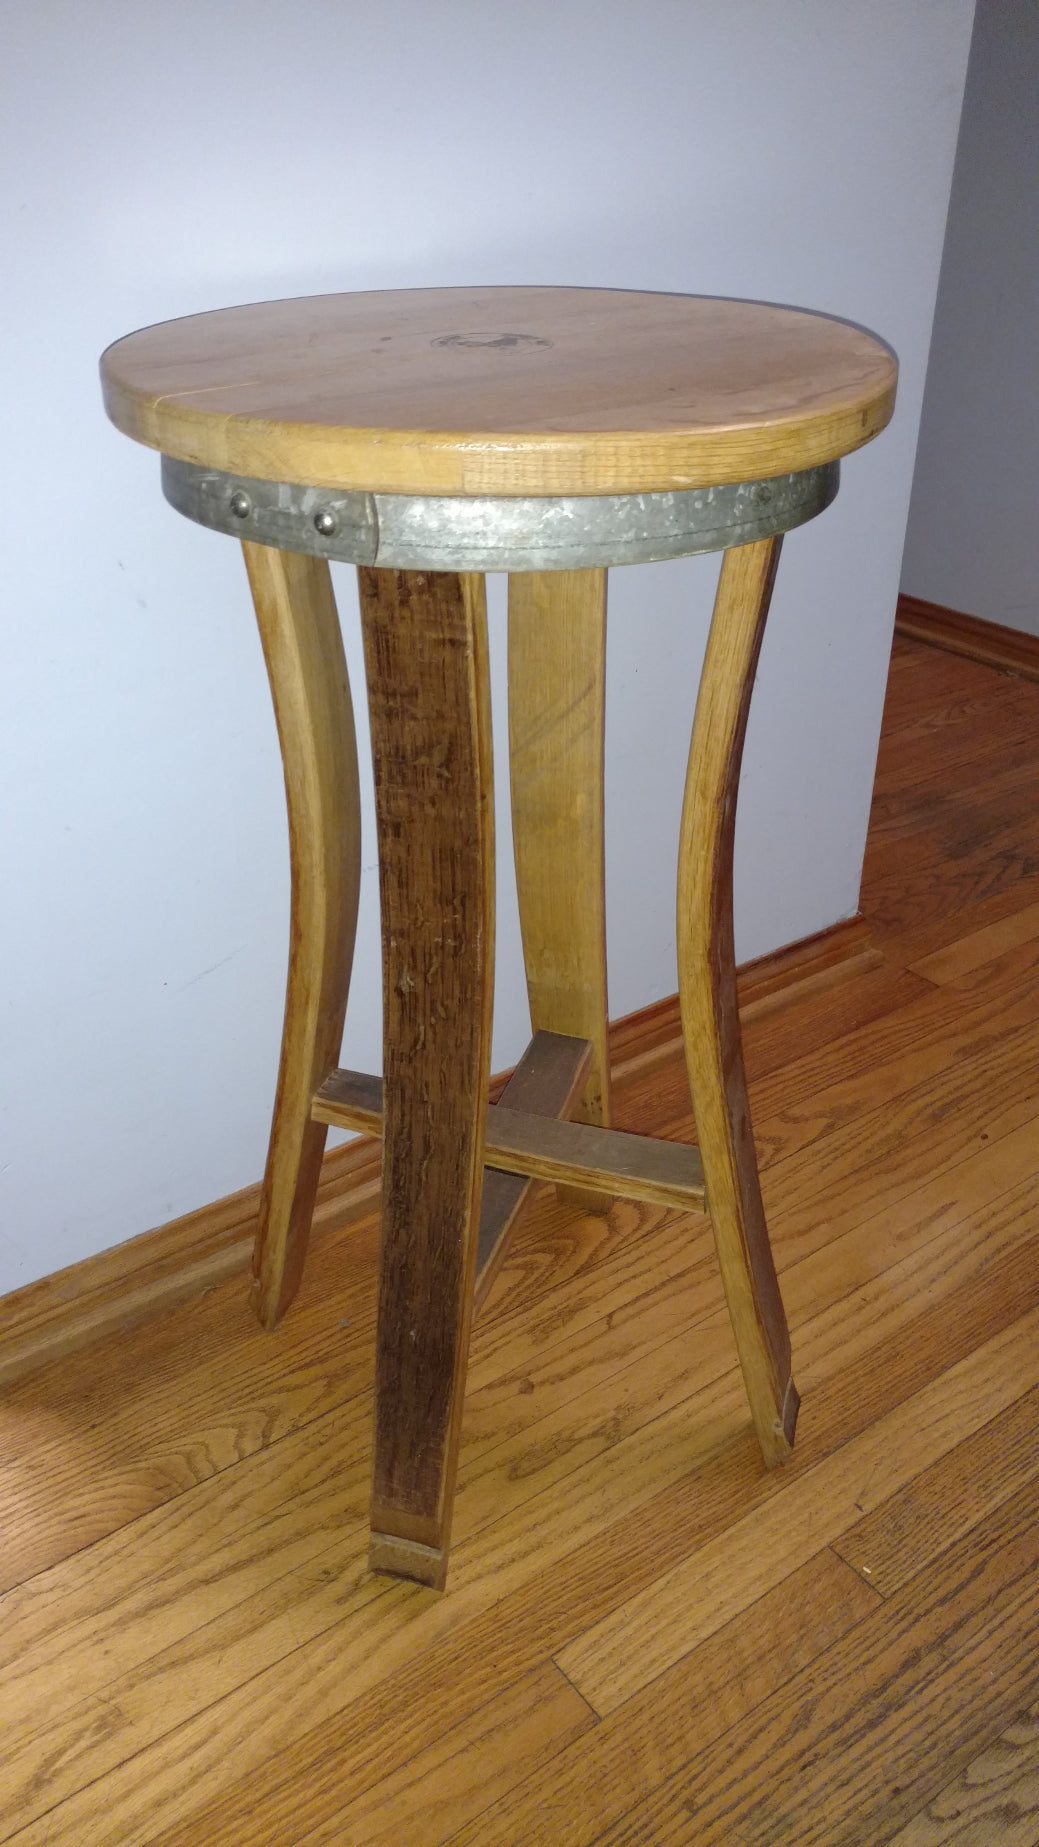 Wine Barrel Barstool inward legs